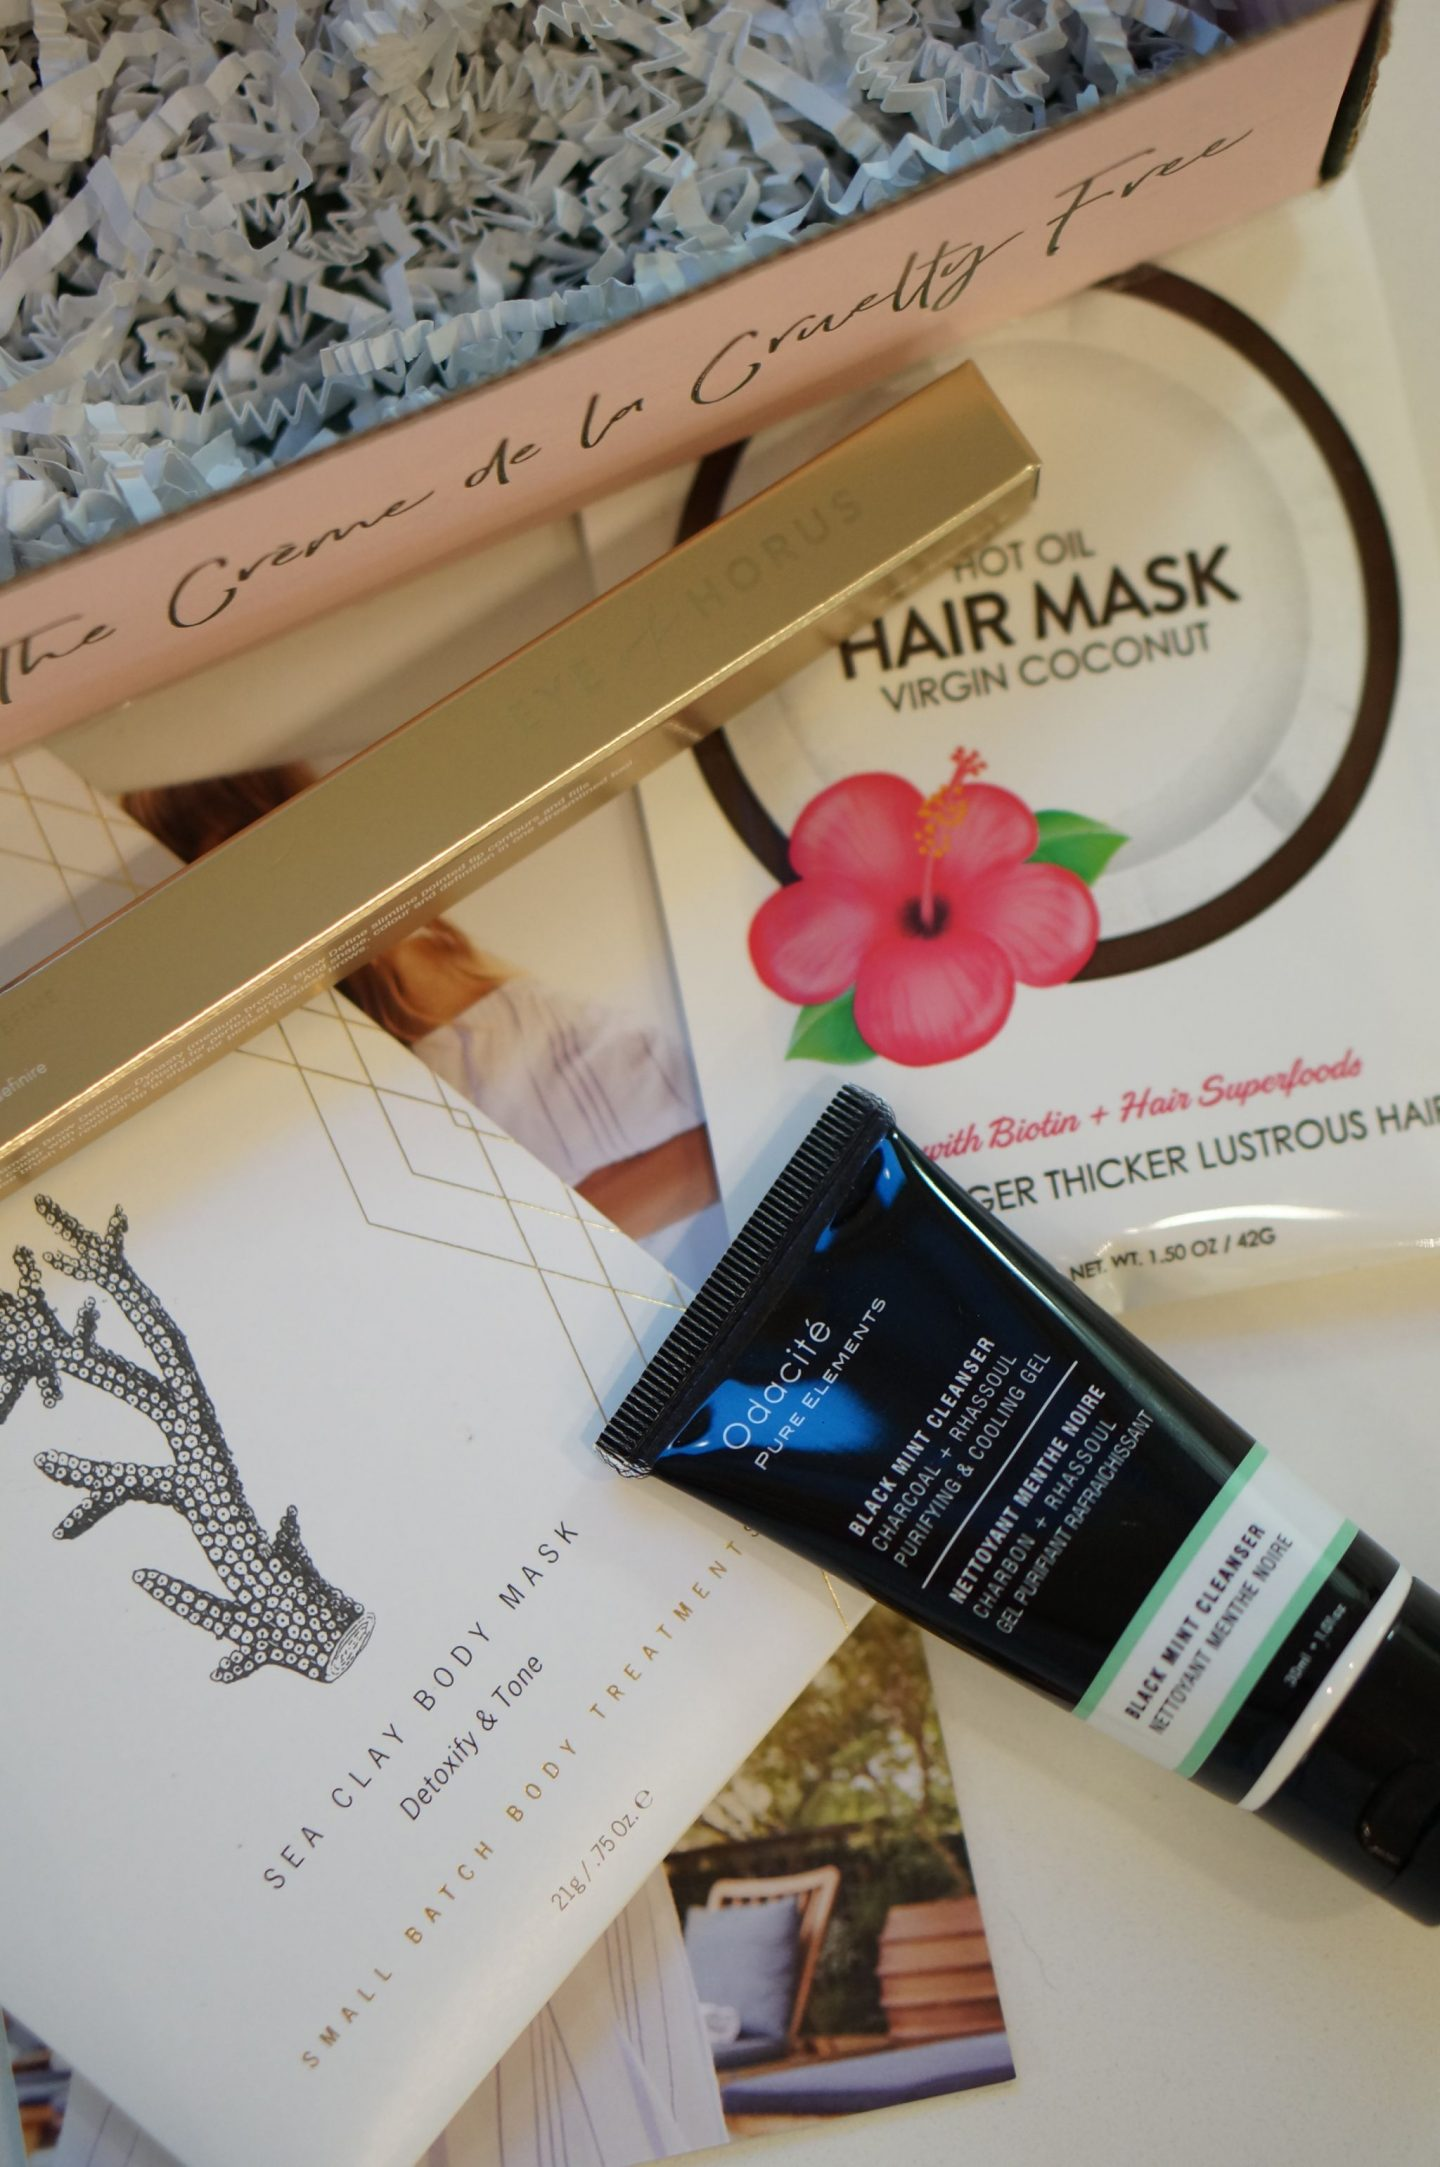 My Petit Vour box is always a highlight of the month.  Trying new brands is so much fun, and this box is a stellar one with three full size products!